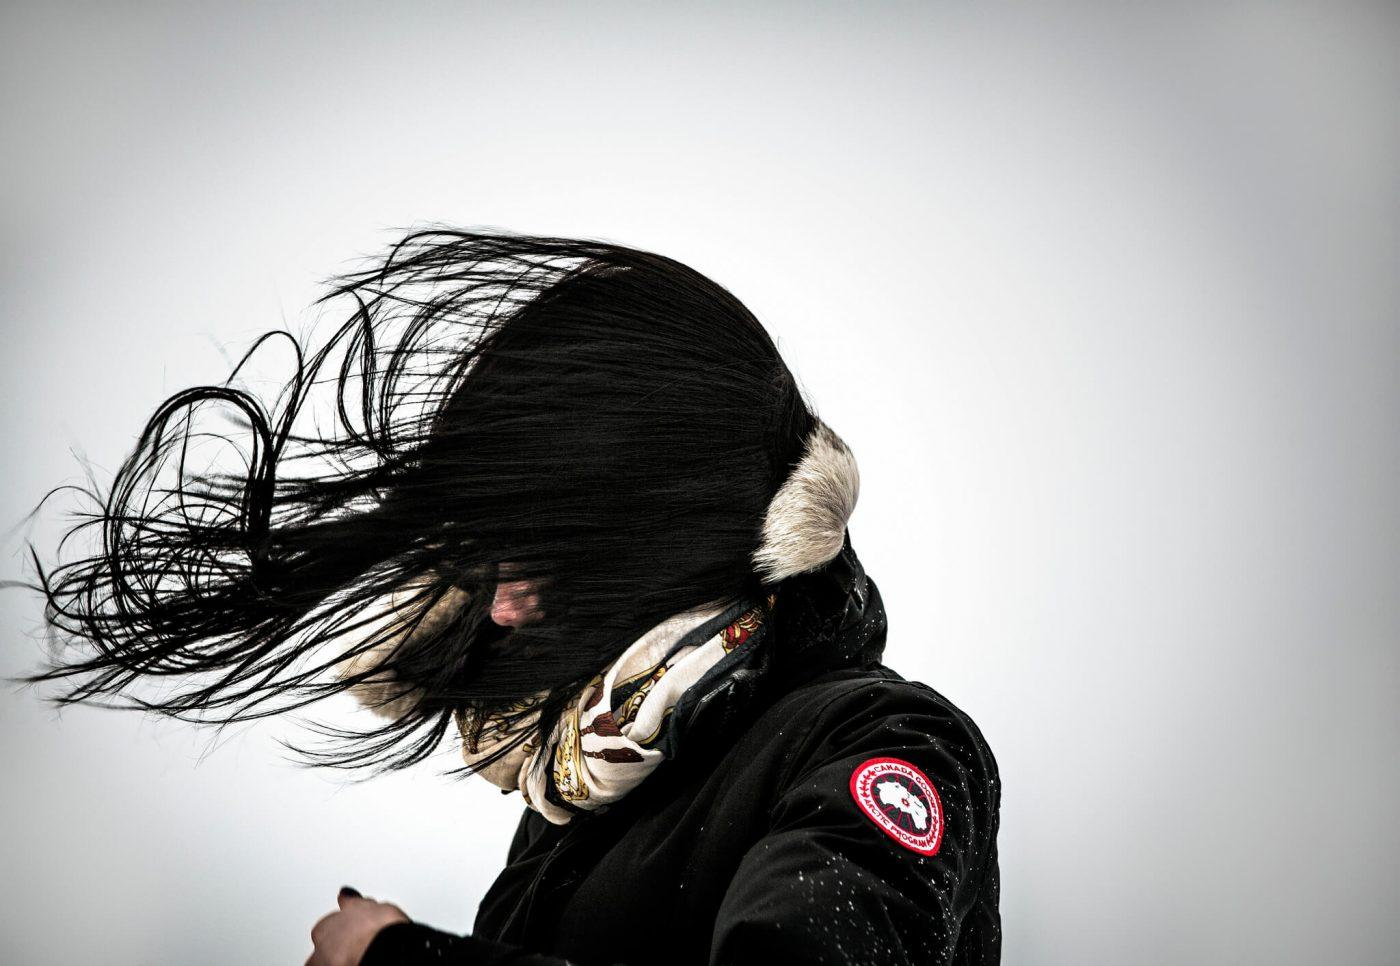 Woman with hair blowing in strong wind in Greenland, by Mads Pihl